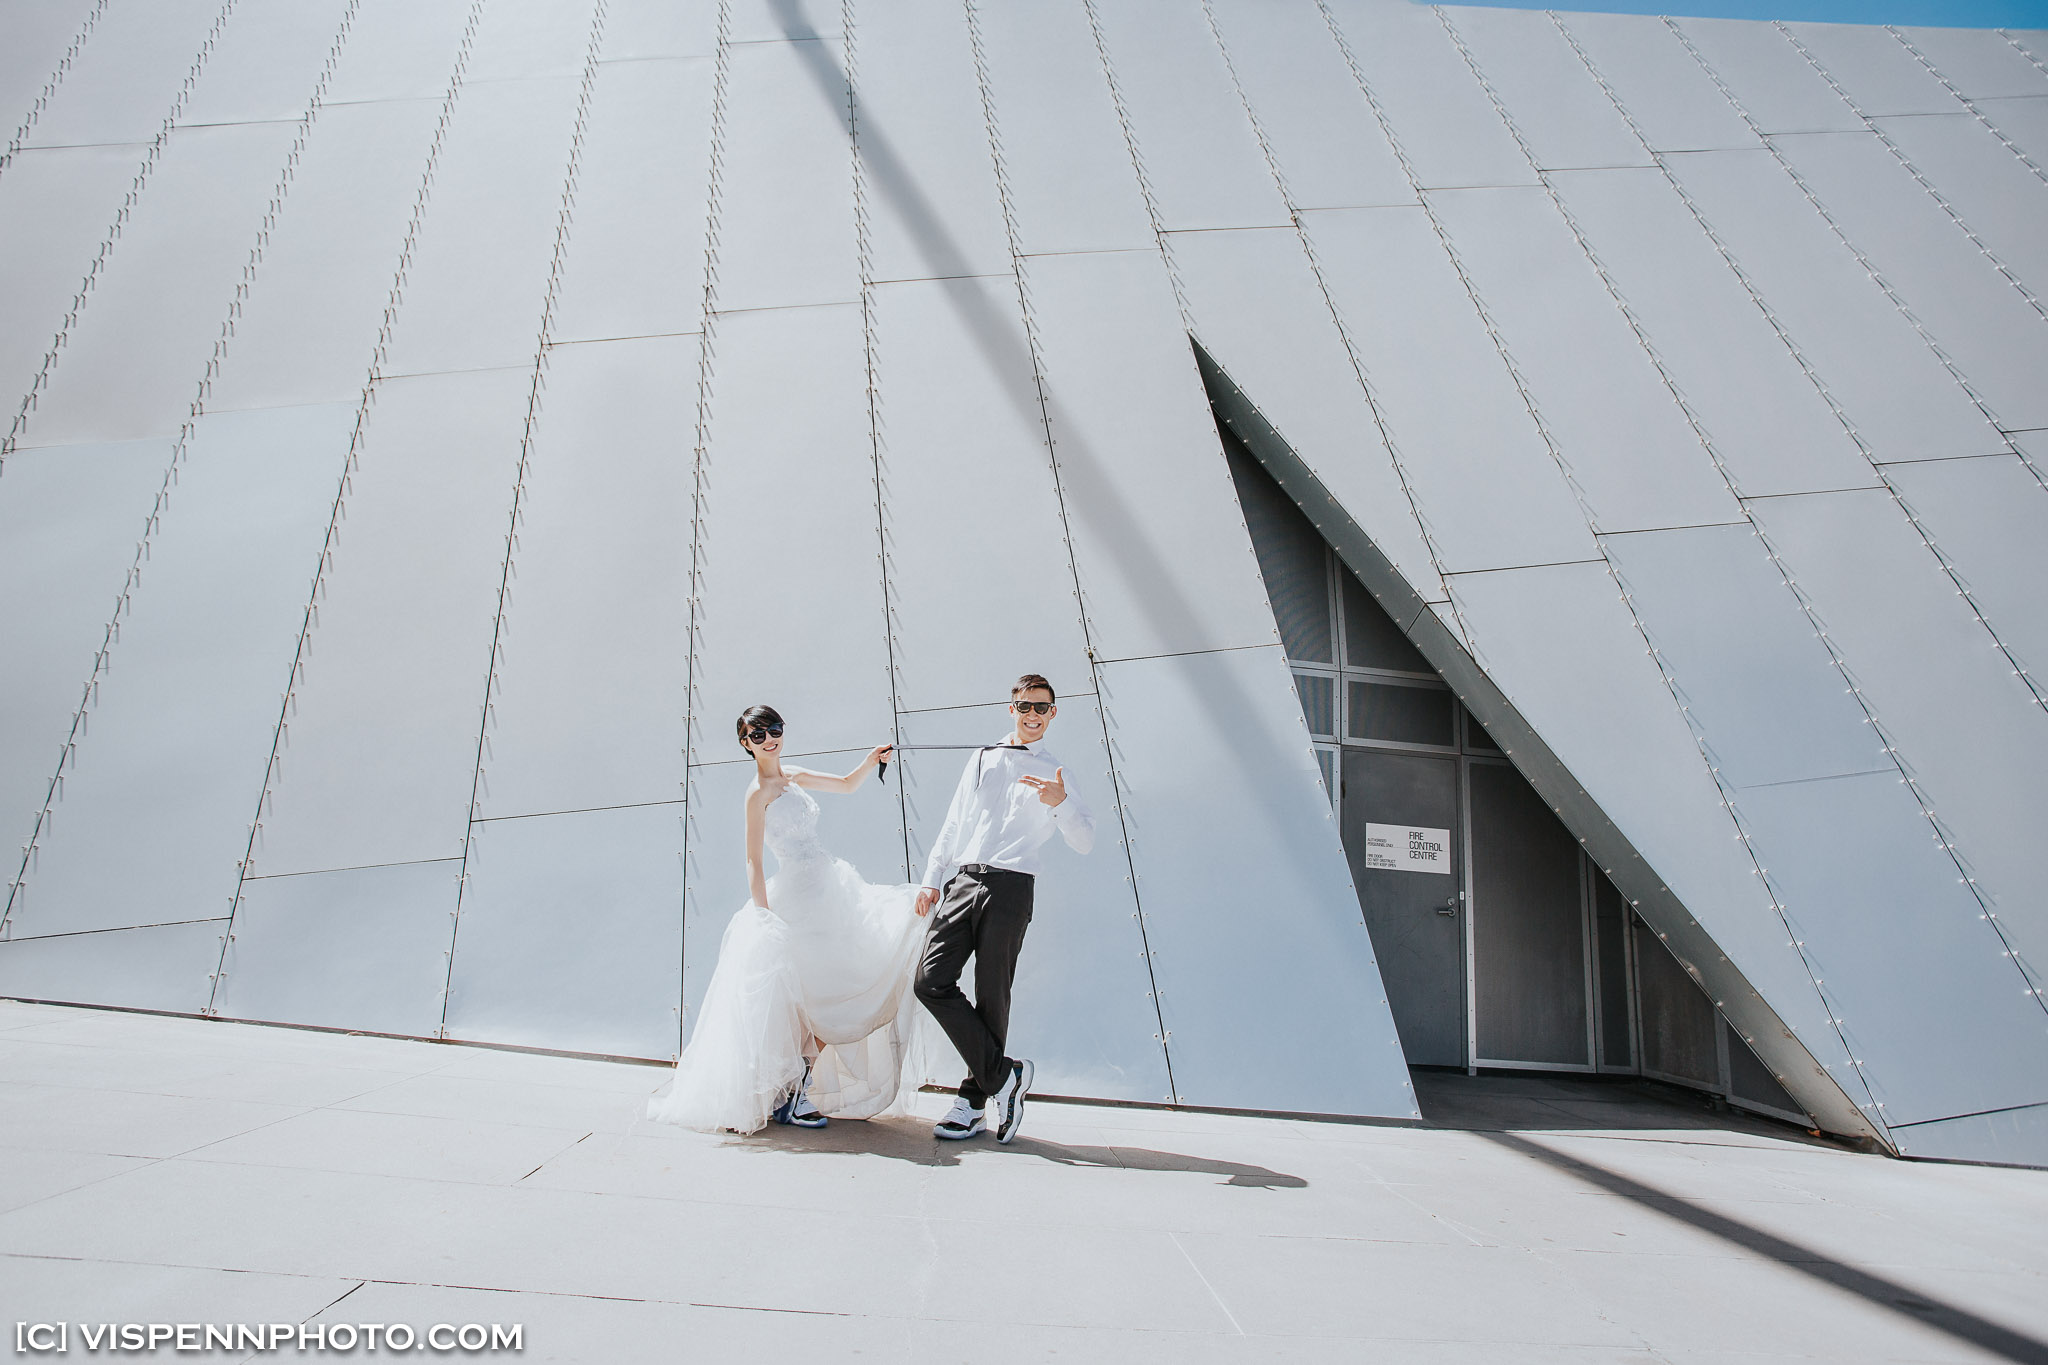 PRE WEDDING Photography Melbourne Ivy PreWedding 2490